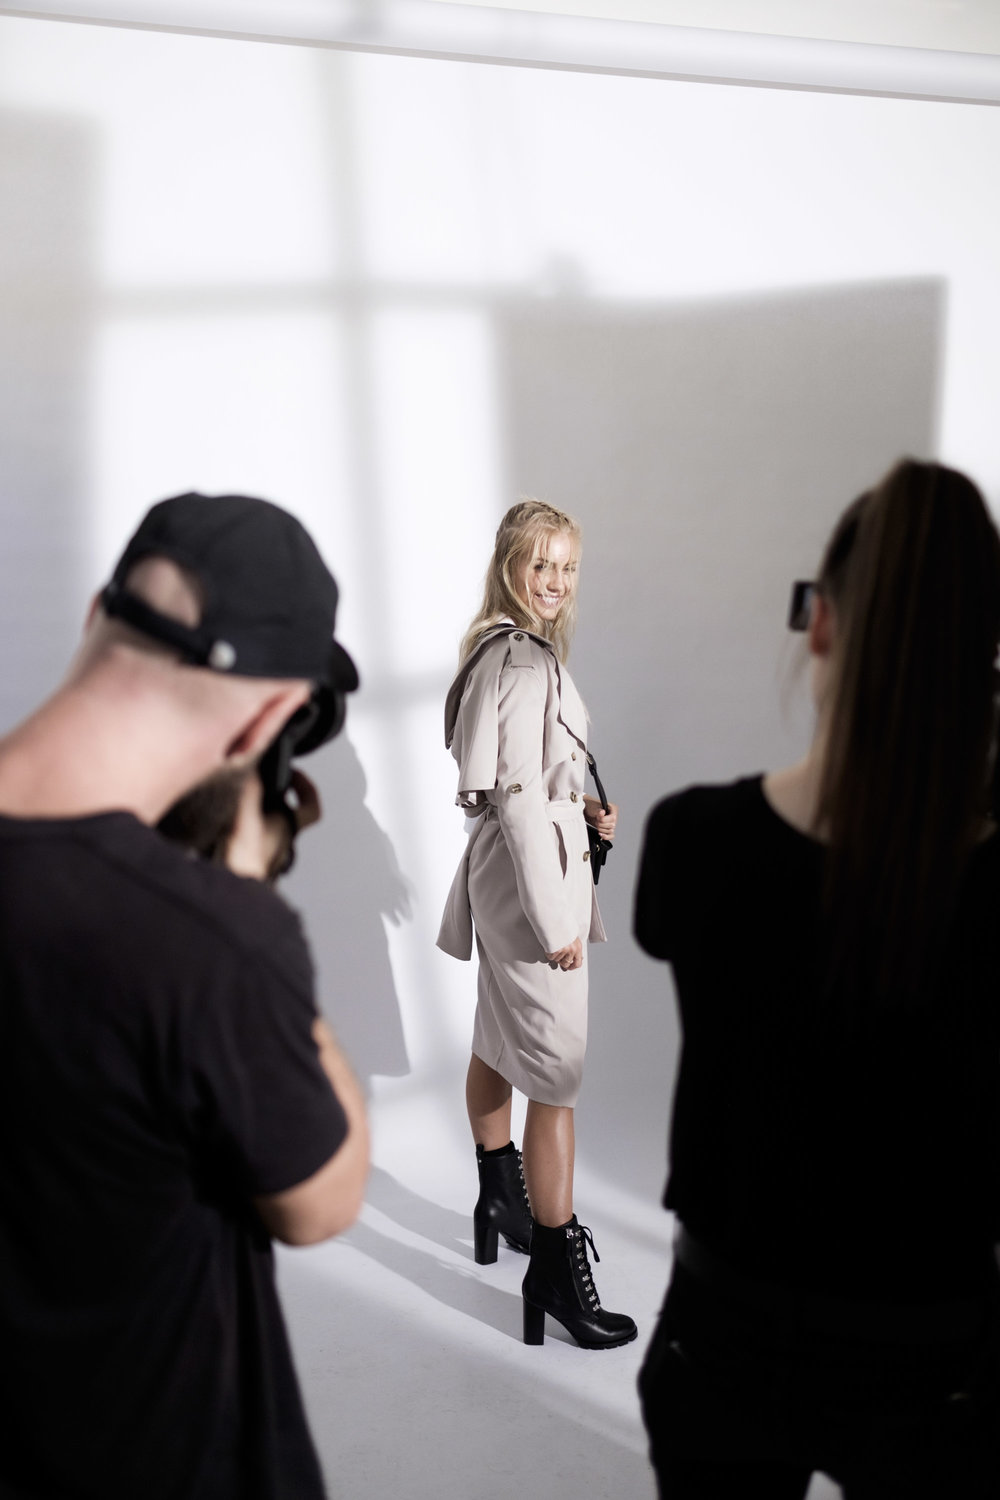 Witchery White Shirt - BTS Elyse Knowles-03-27__Z013063.jpg